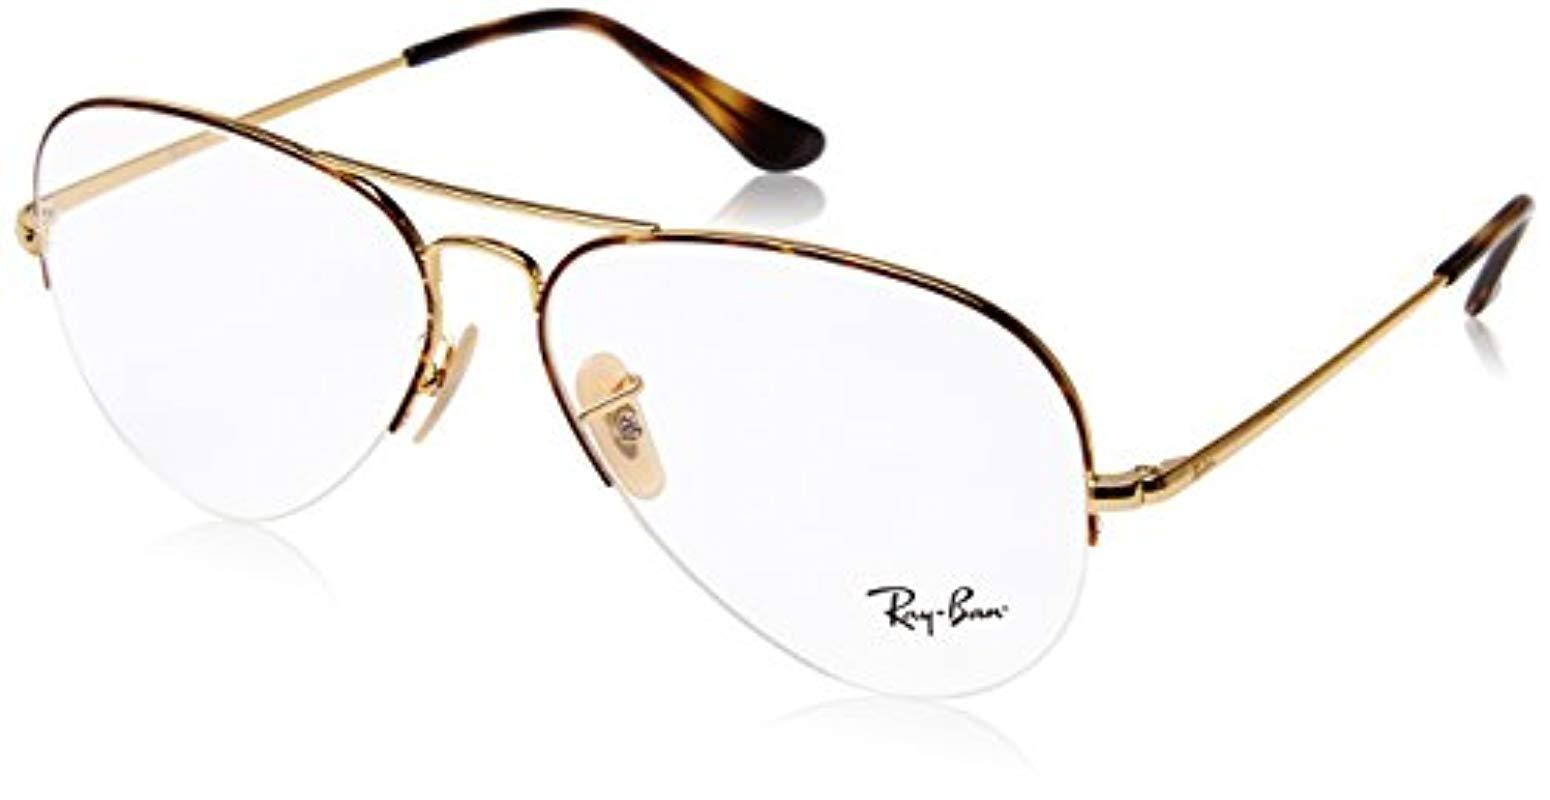 34688a38c8407 Ray-Ban Rx6589 Glasses In Gold Rx6589 2500 56 in Metallic for Men ...